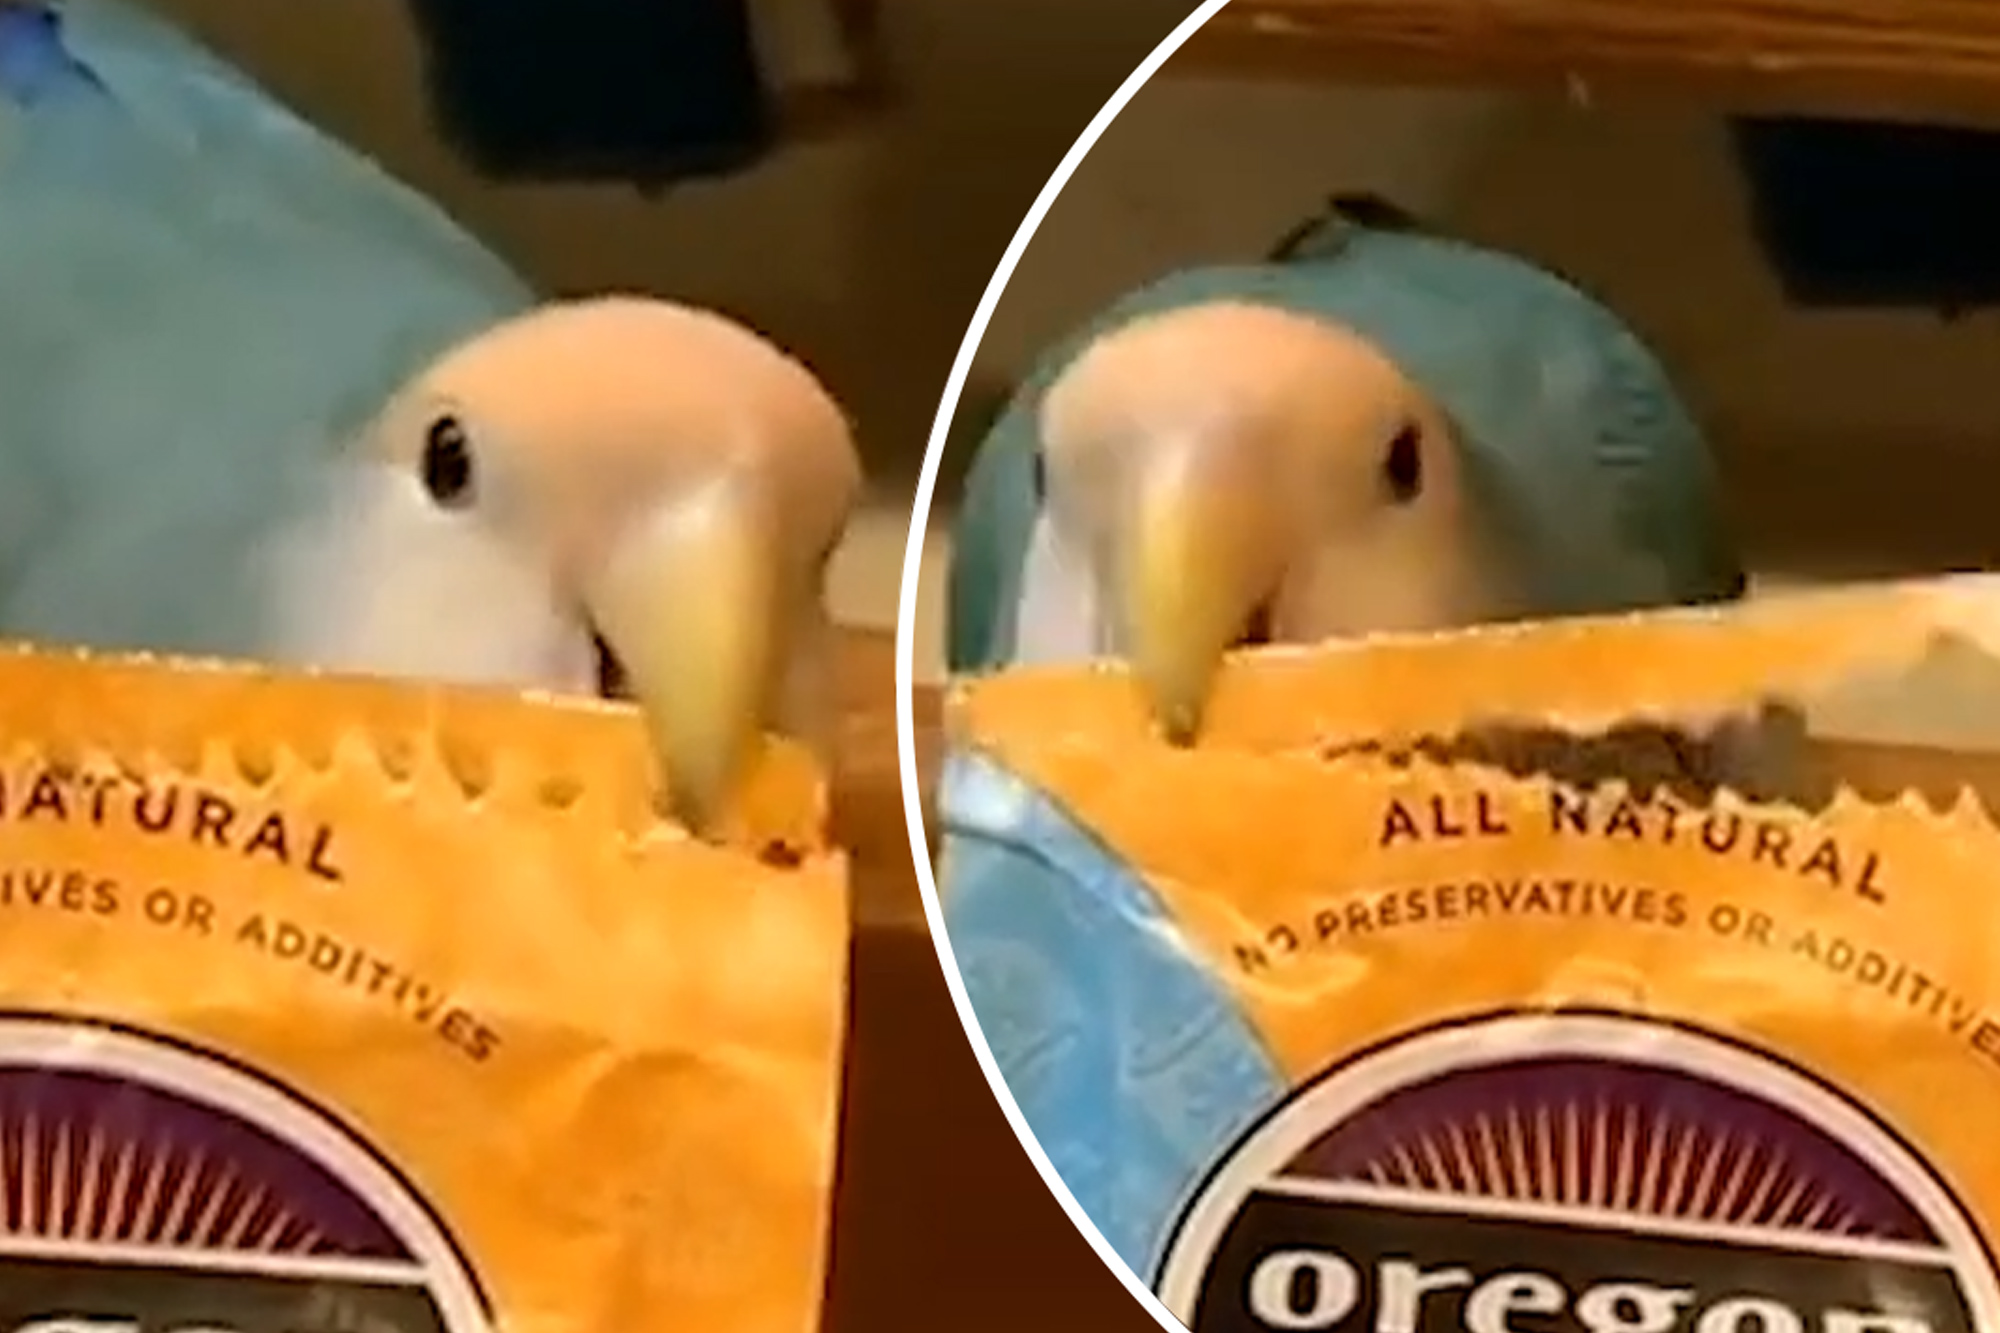 Parrot replaces scissors in this house